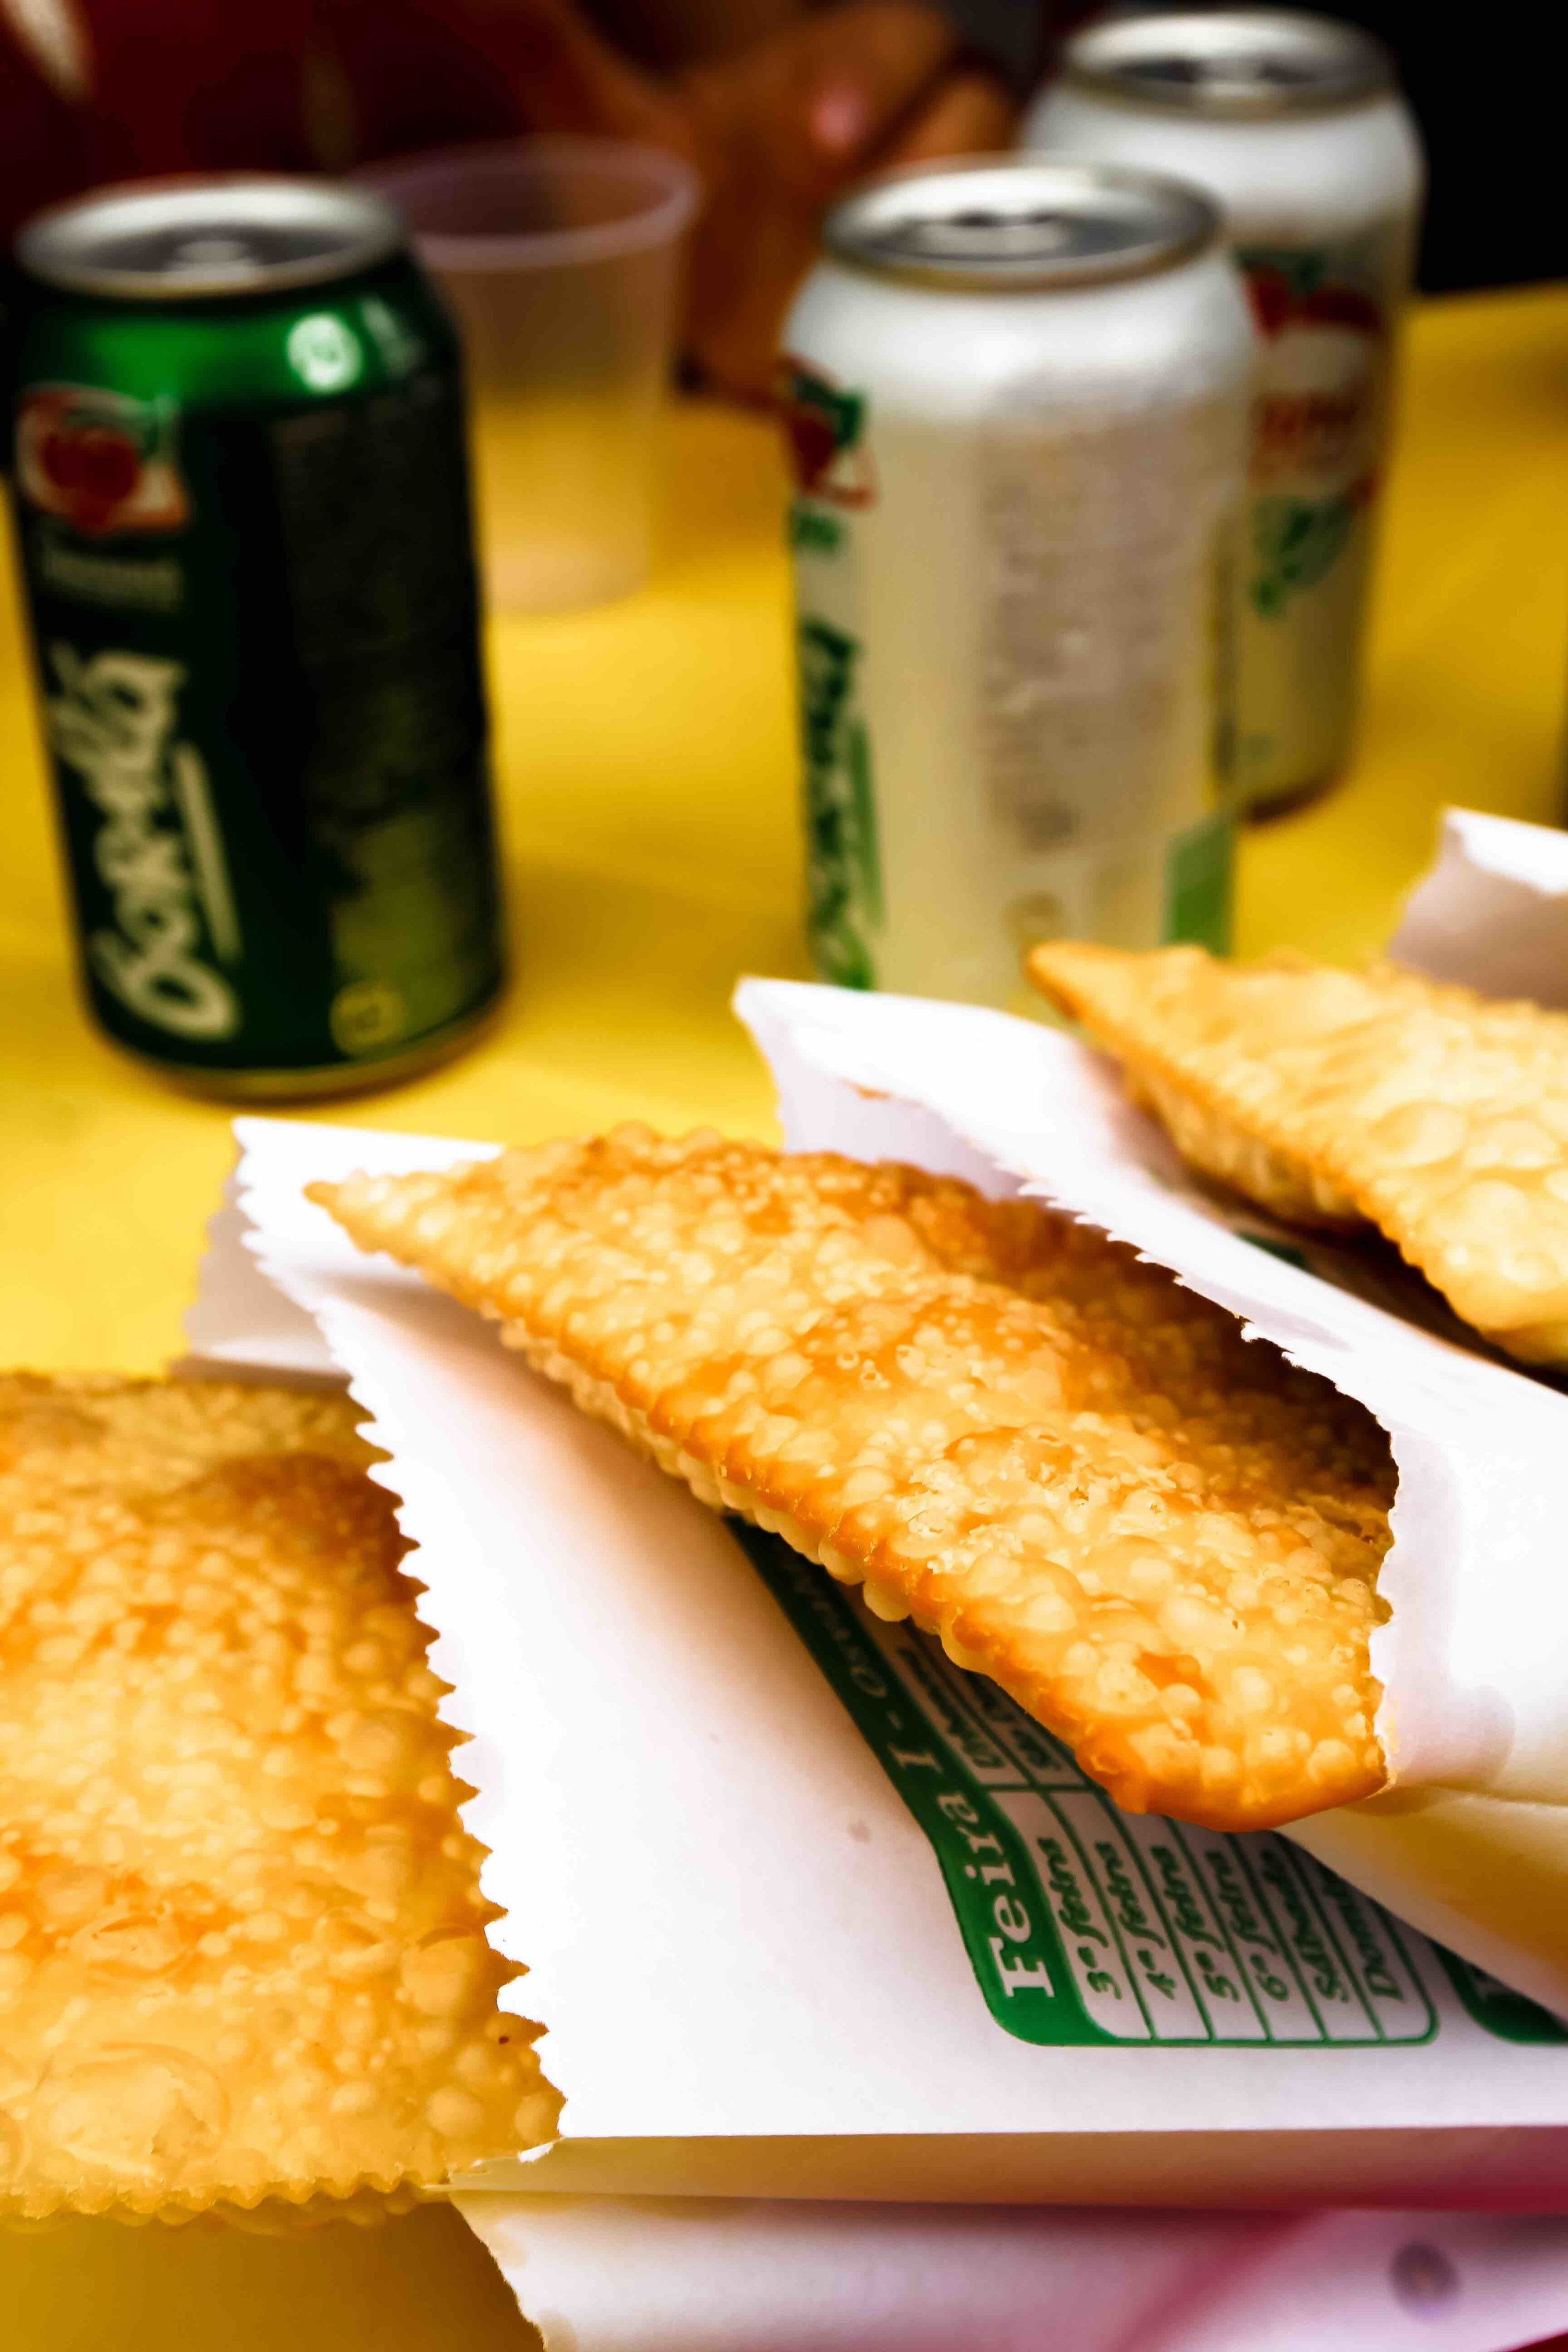 Locally-made  Pastel , a fried pastry filled with meat, cheese, or, sometimes, nothing.